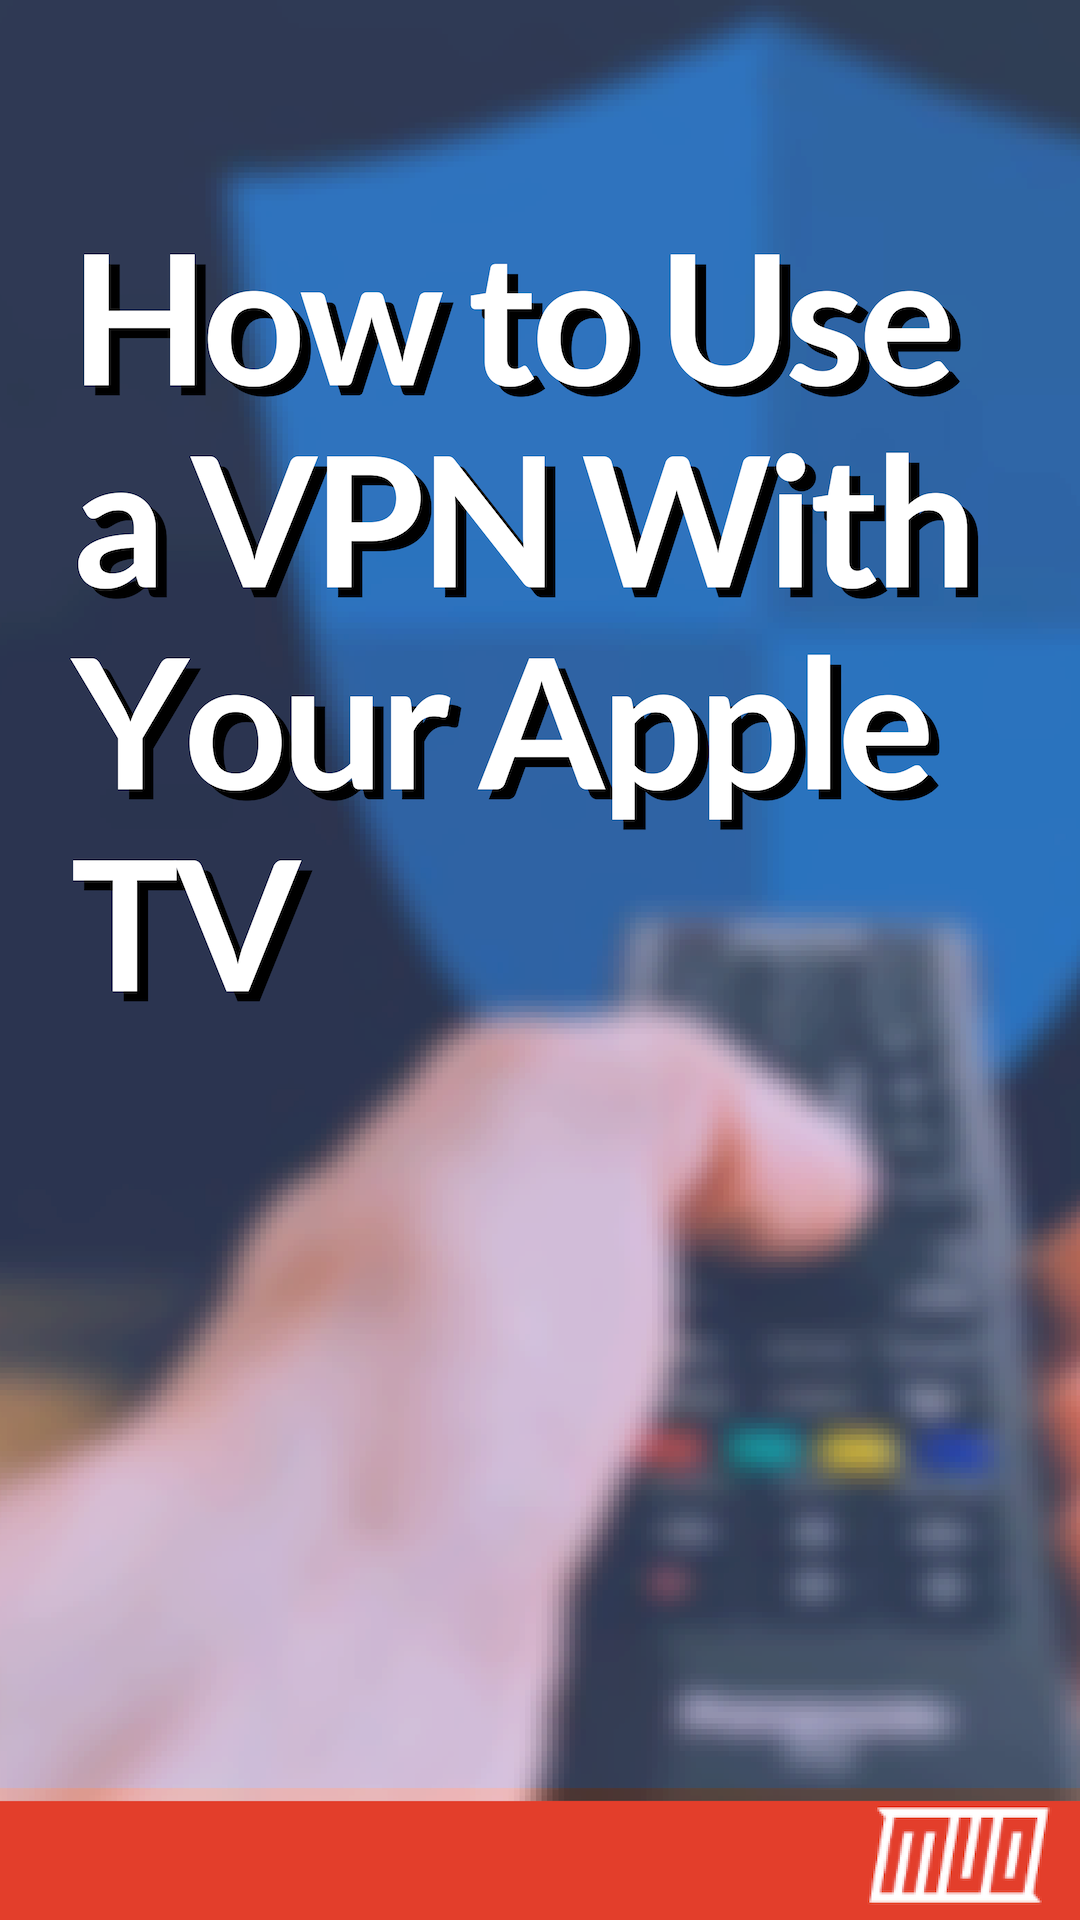 351a1cd81b9983dec49723b5affd7f50 - How To Use Vpn On Tv